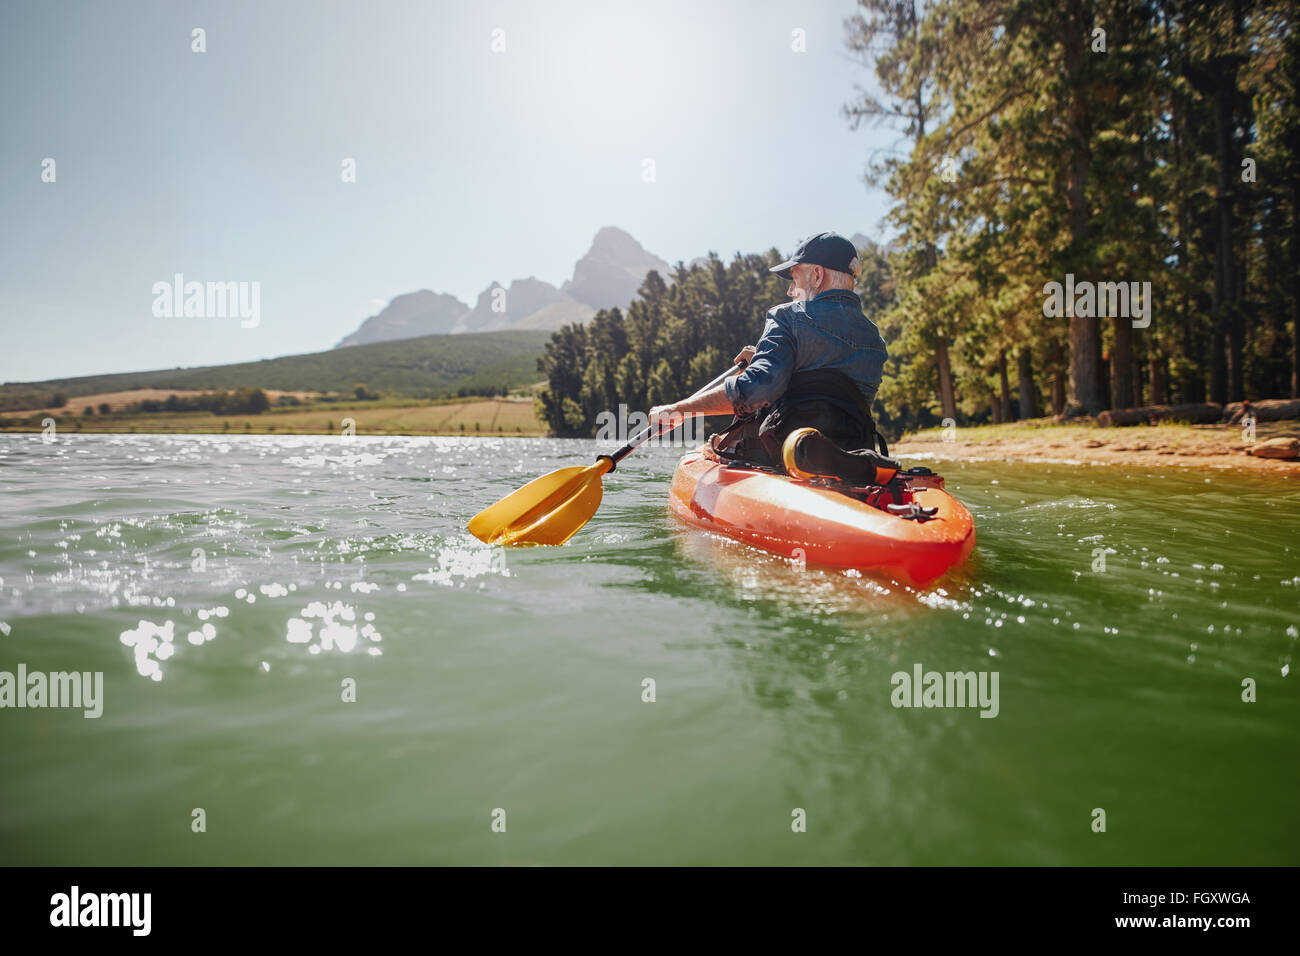 Rear view of a mature man canoeing in a lake. Senior man paddling kayak on a summer day. - Stock Image